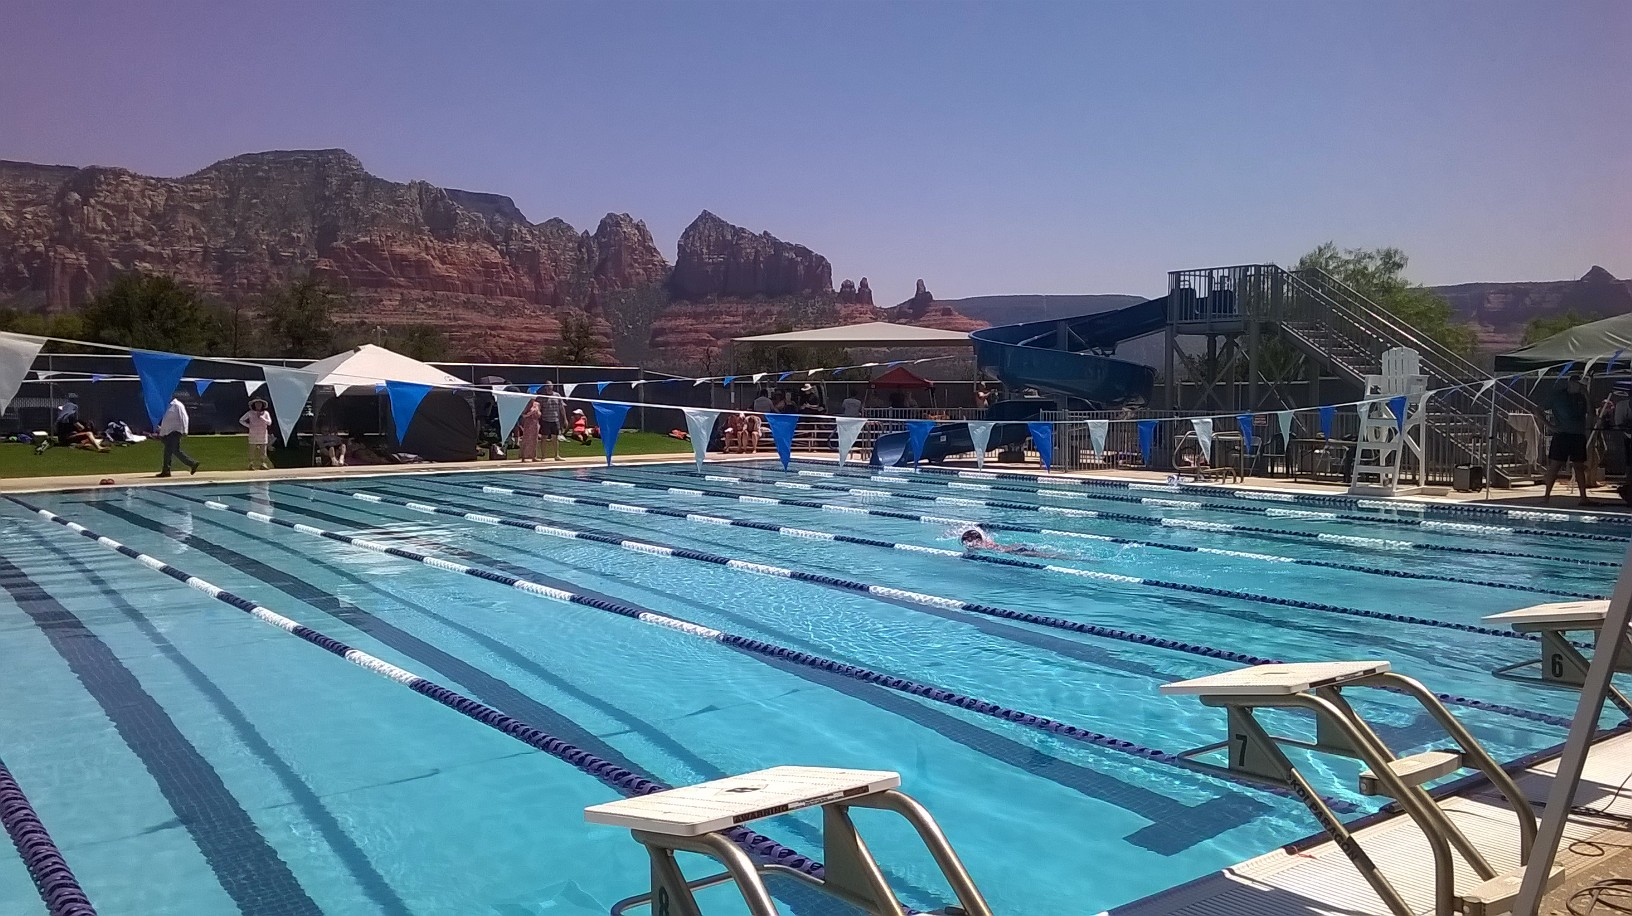 0146 - Sedona Community Pool (AZ)